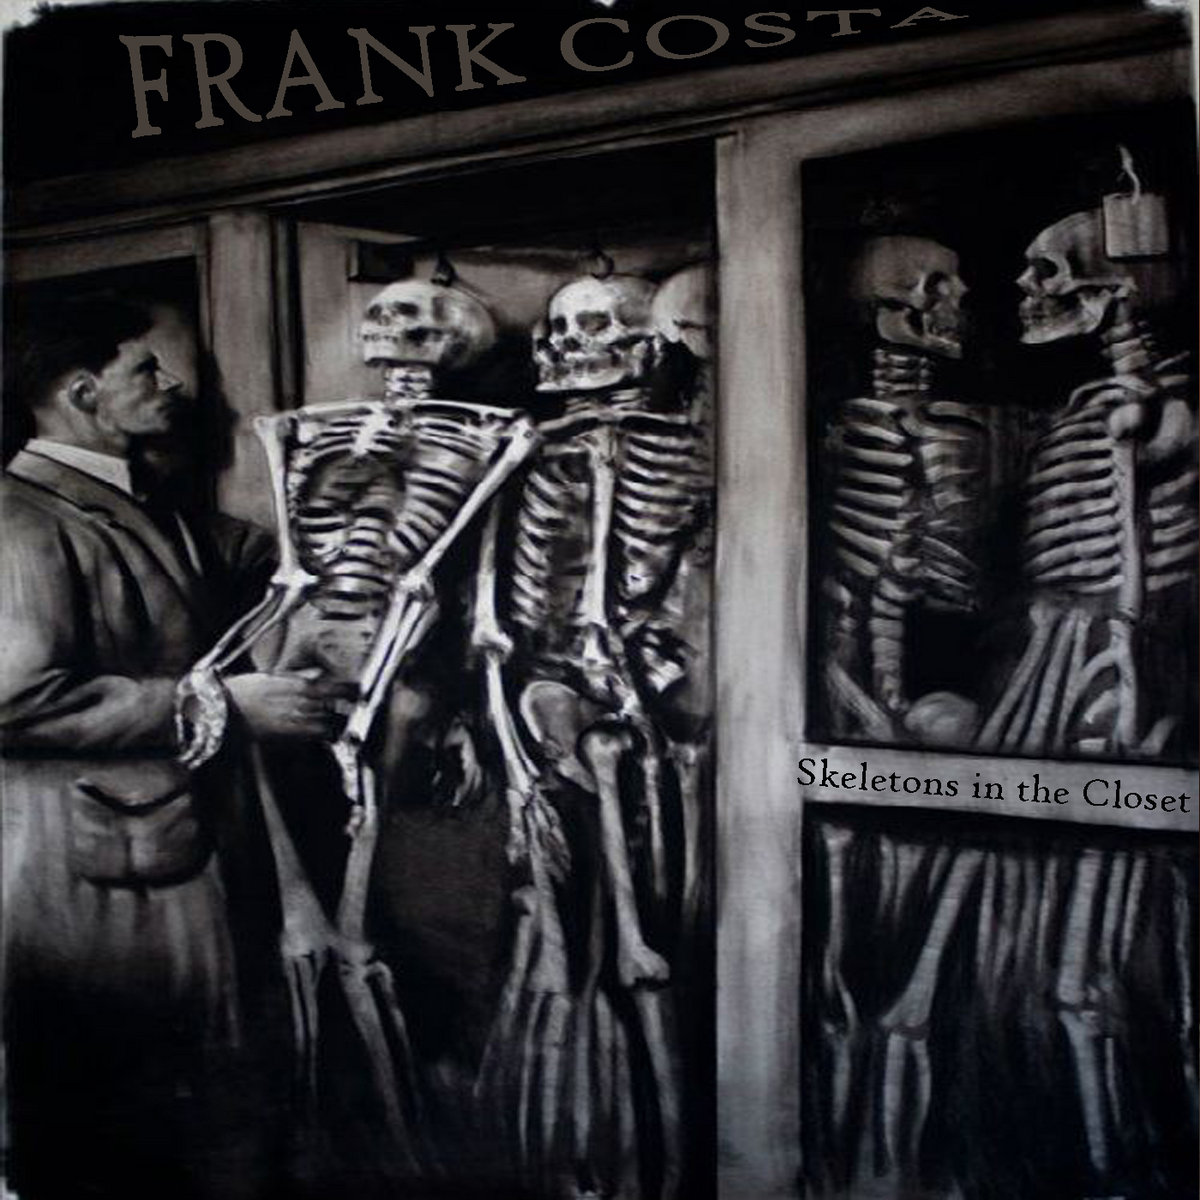 Skeletons In The Closet Frank Costa